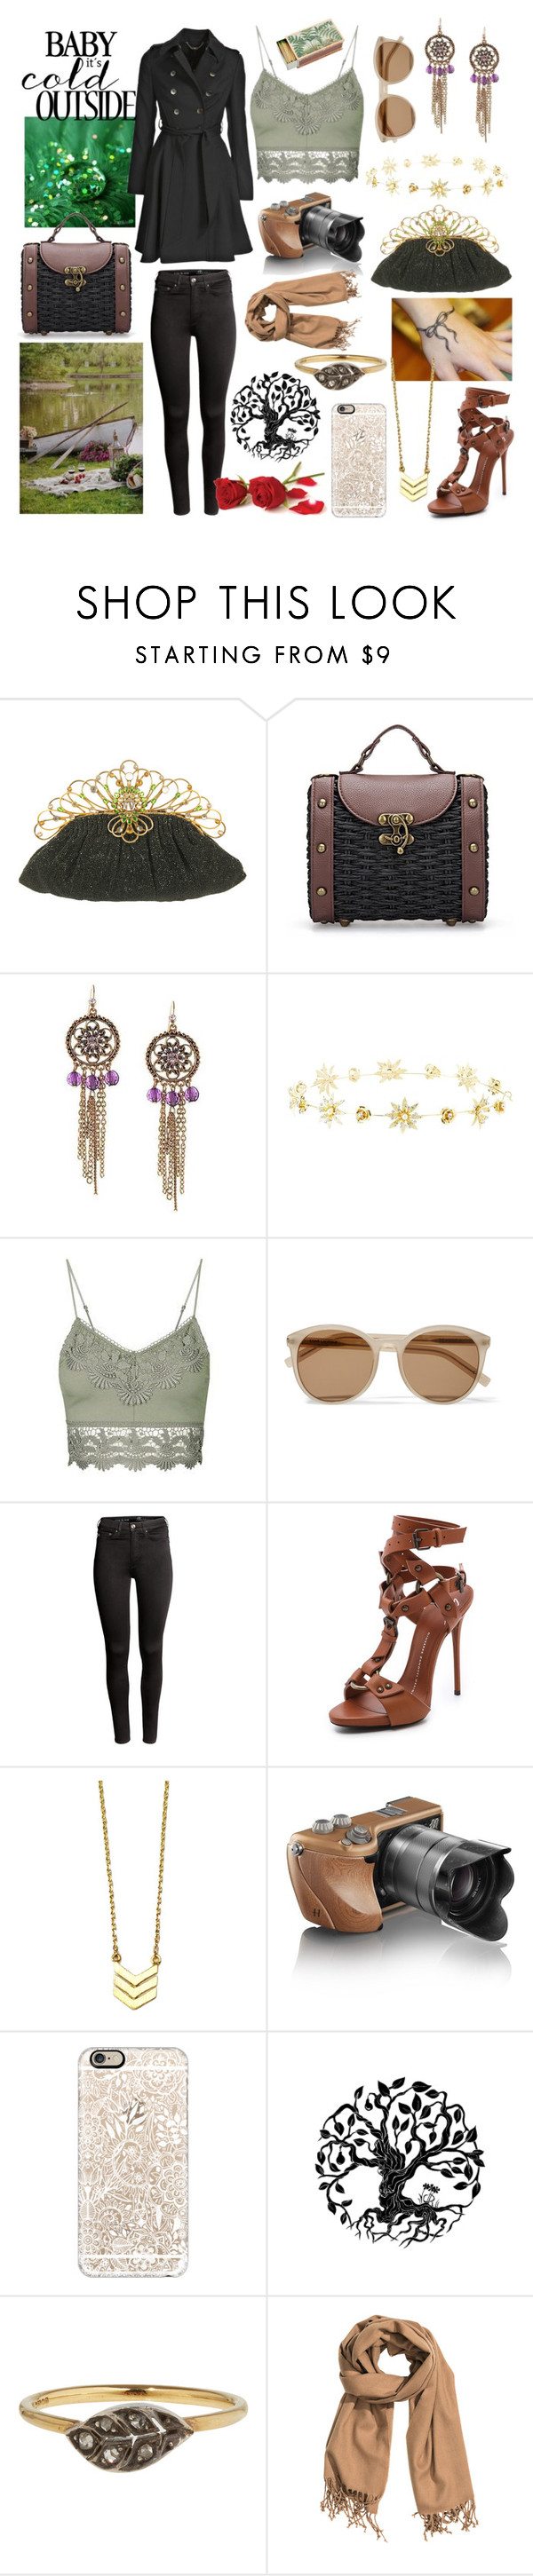 """Cold"" by tery ❤ liked on Polyvore featuring 1928, Charlotte Russe, Topshop, Yves Saint Laurent, H&M, Giuseppe Zanotti, Hasselblad, Casetify, Alex and Ani and Annina Vogel"